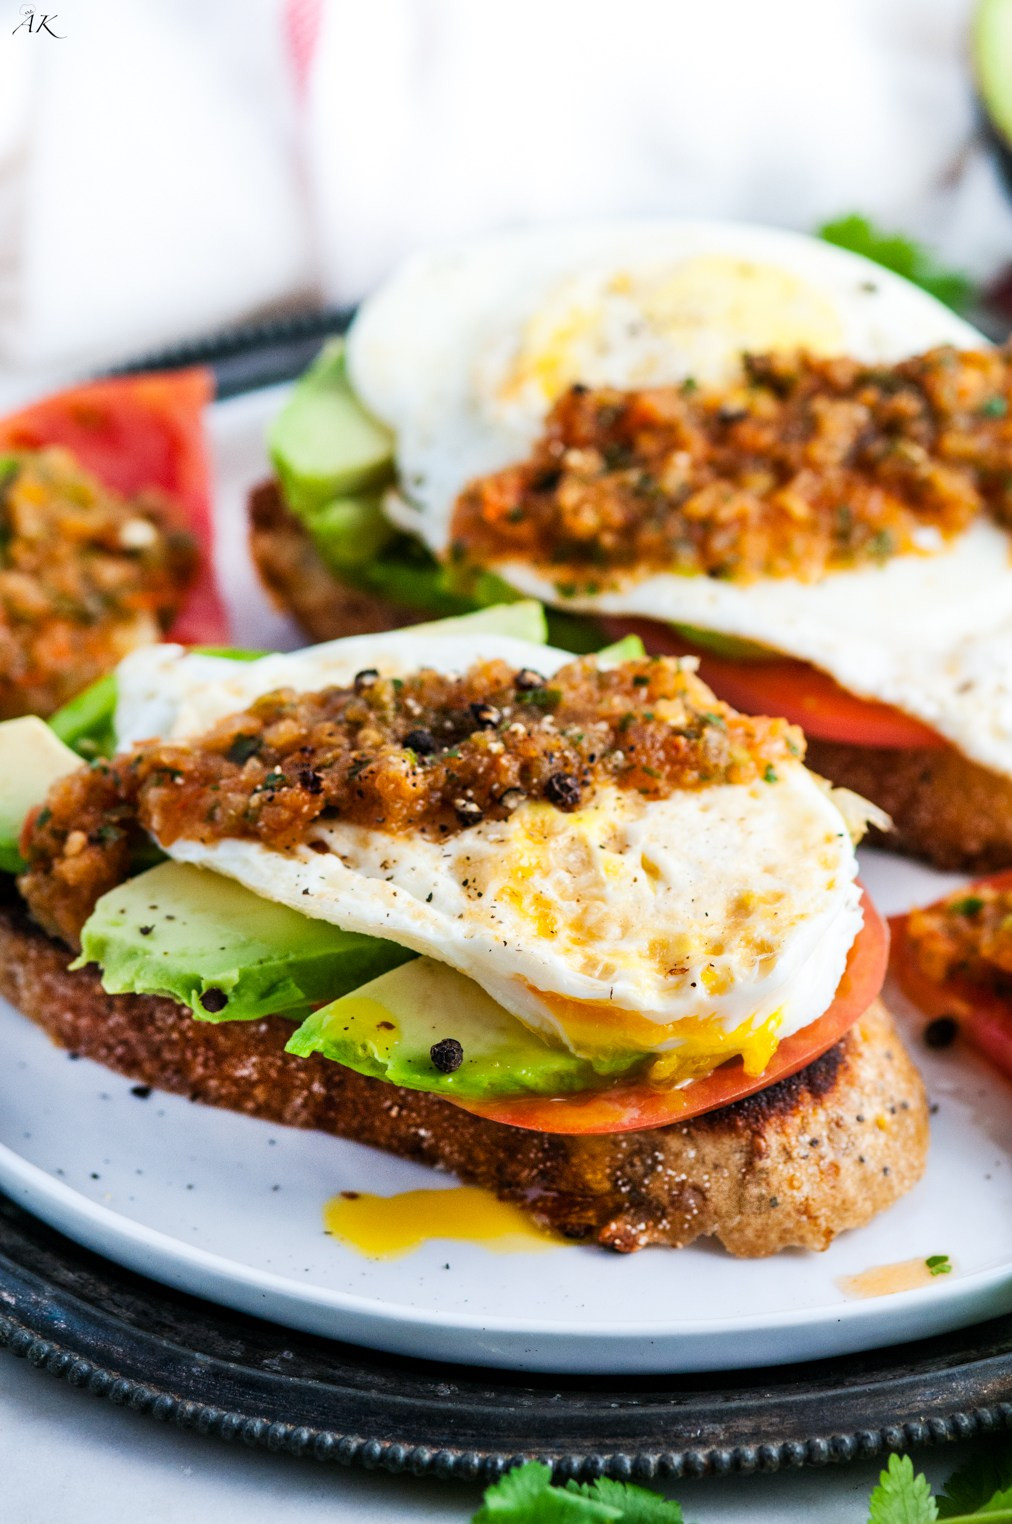 Healthy Avocado Breakfast  Healthy Tomato Avocado and Egg Breakfast Toast Aberdeen